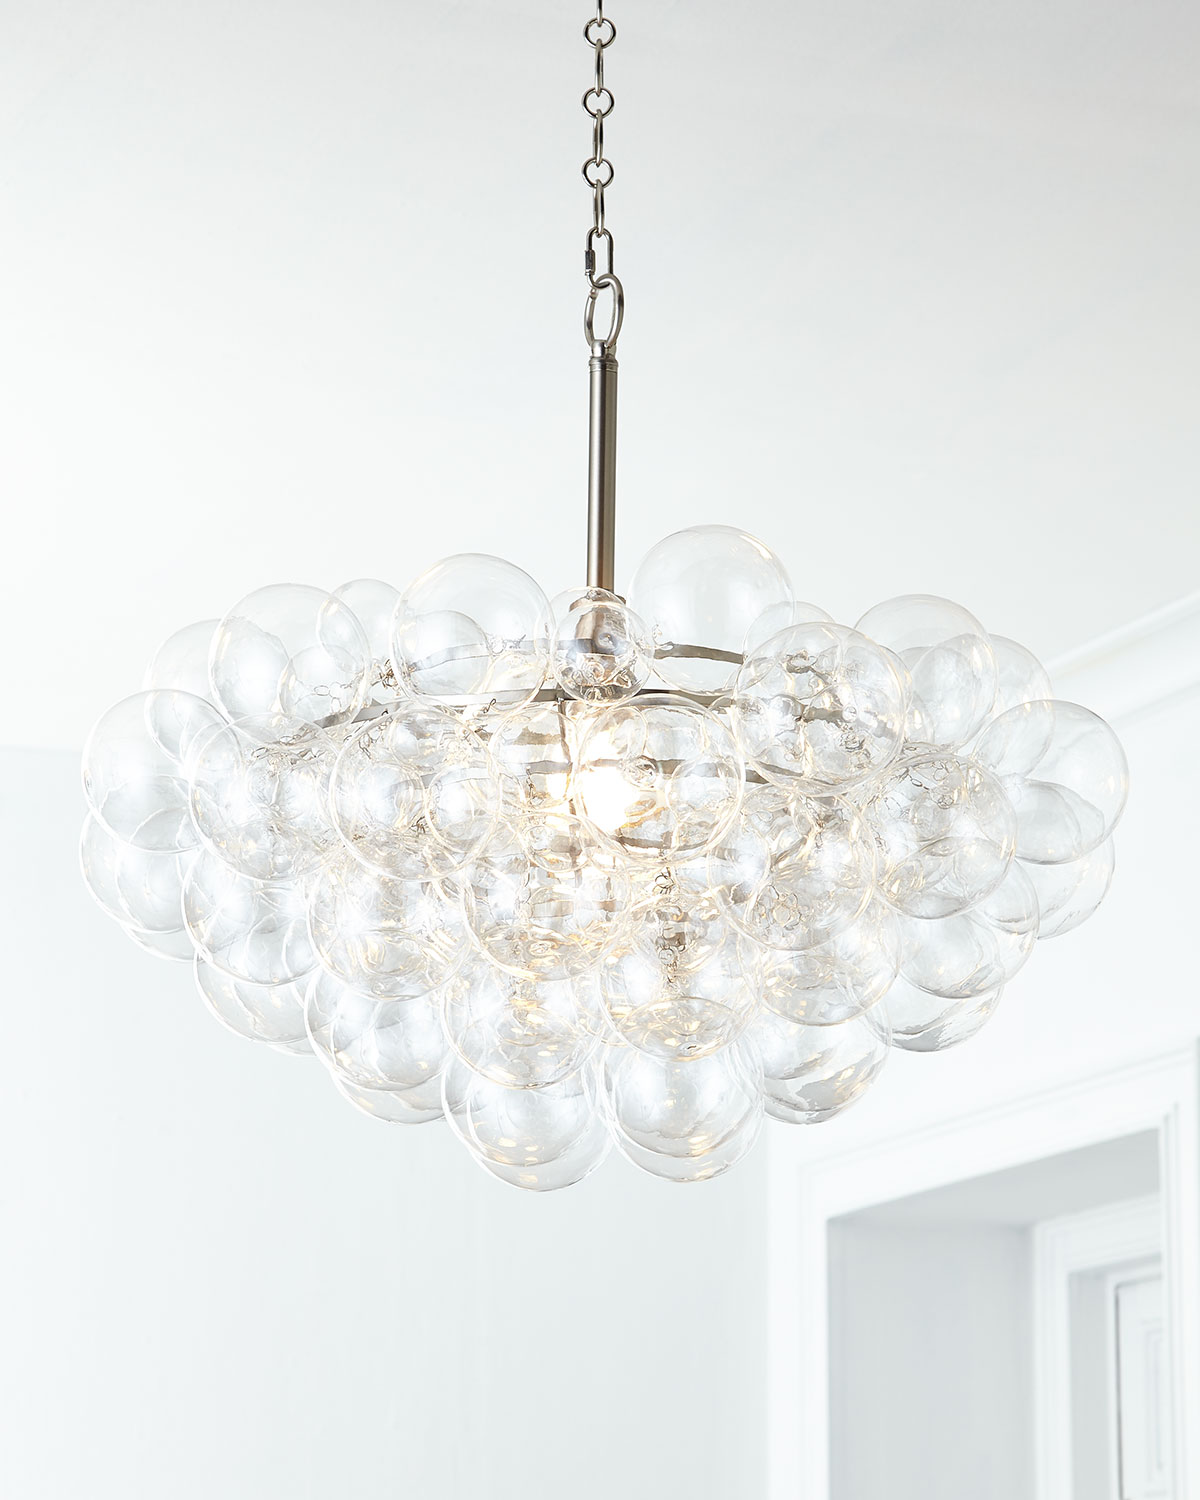 Neiman marcus lighting Light Fixtures Regina Andrew Designbubbles 1light Pendant Neiman Marcus Regina Andrew Design Bubbles 1light Pendant Neiman Marcus